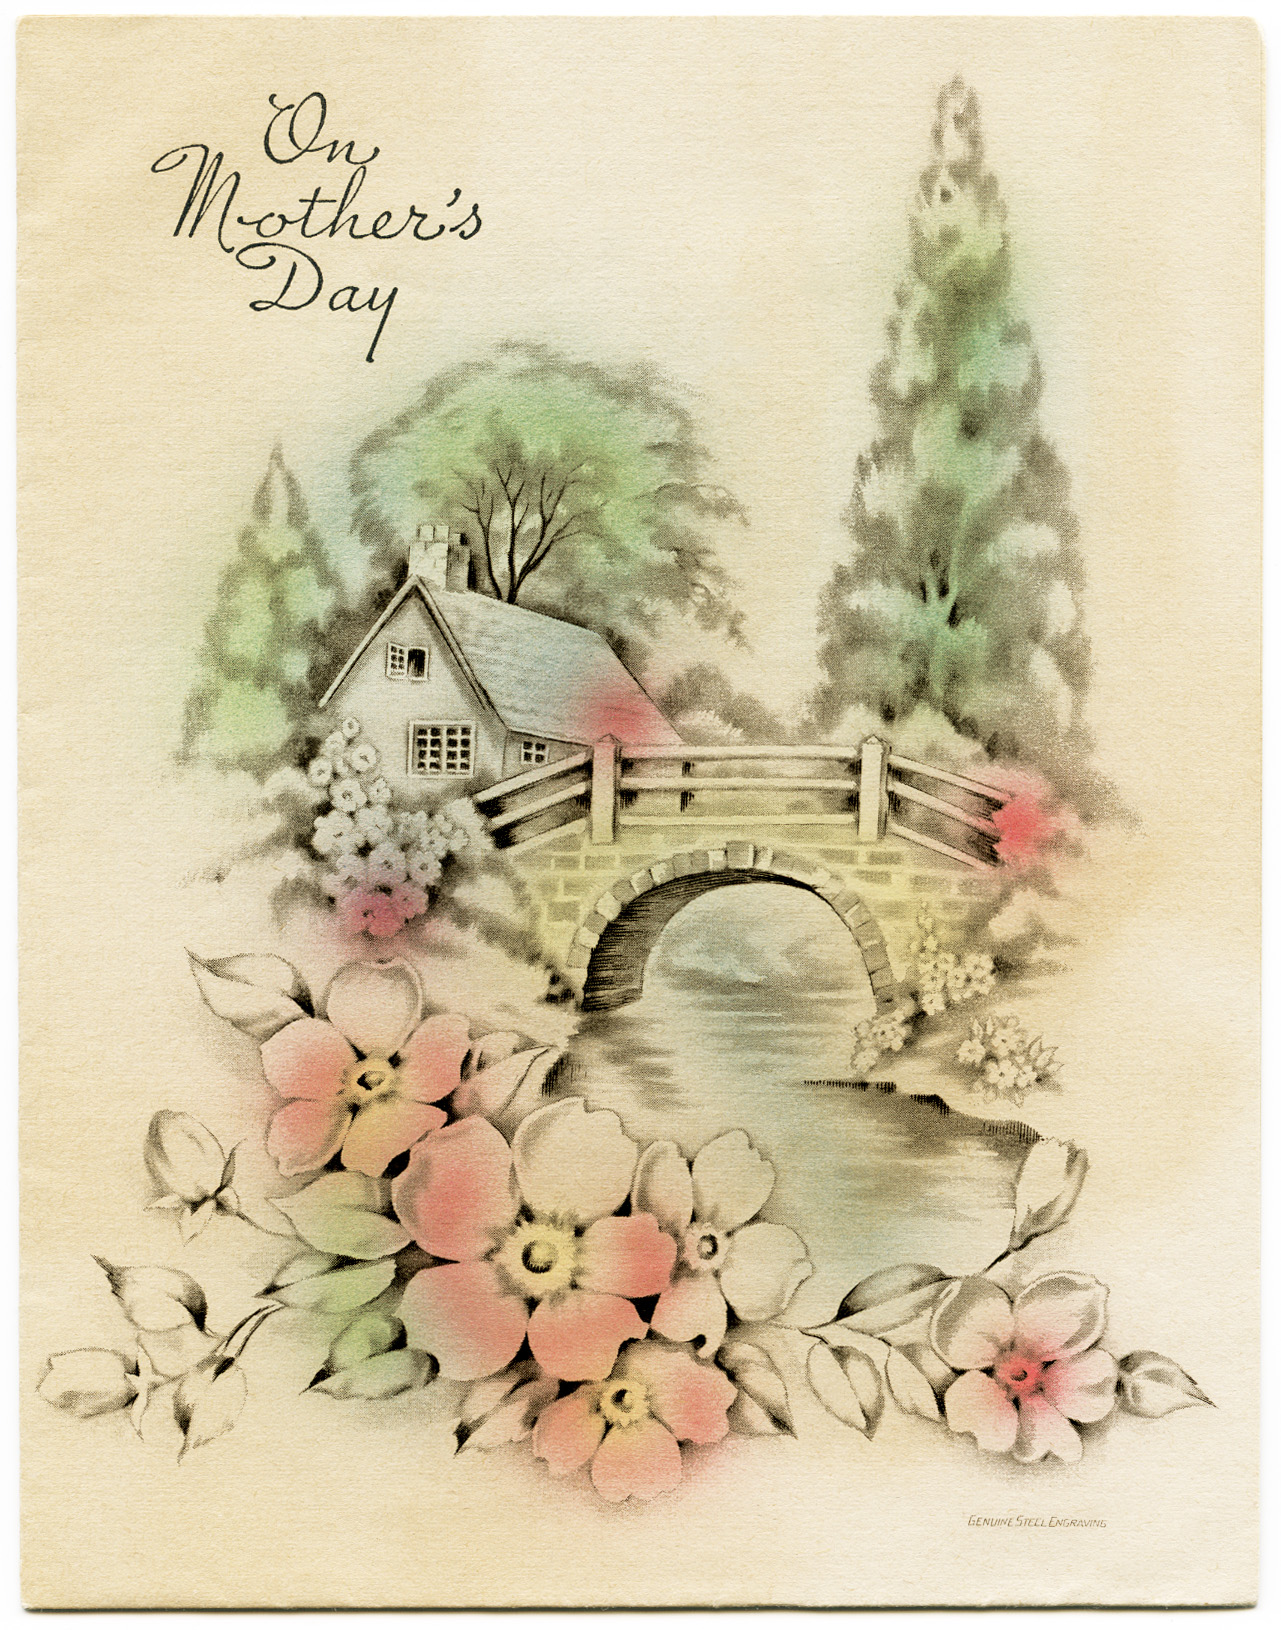 Mother S Day Nail Art Pancreatic Cancer Awareness: Free Vintage Illustrations